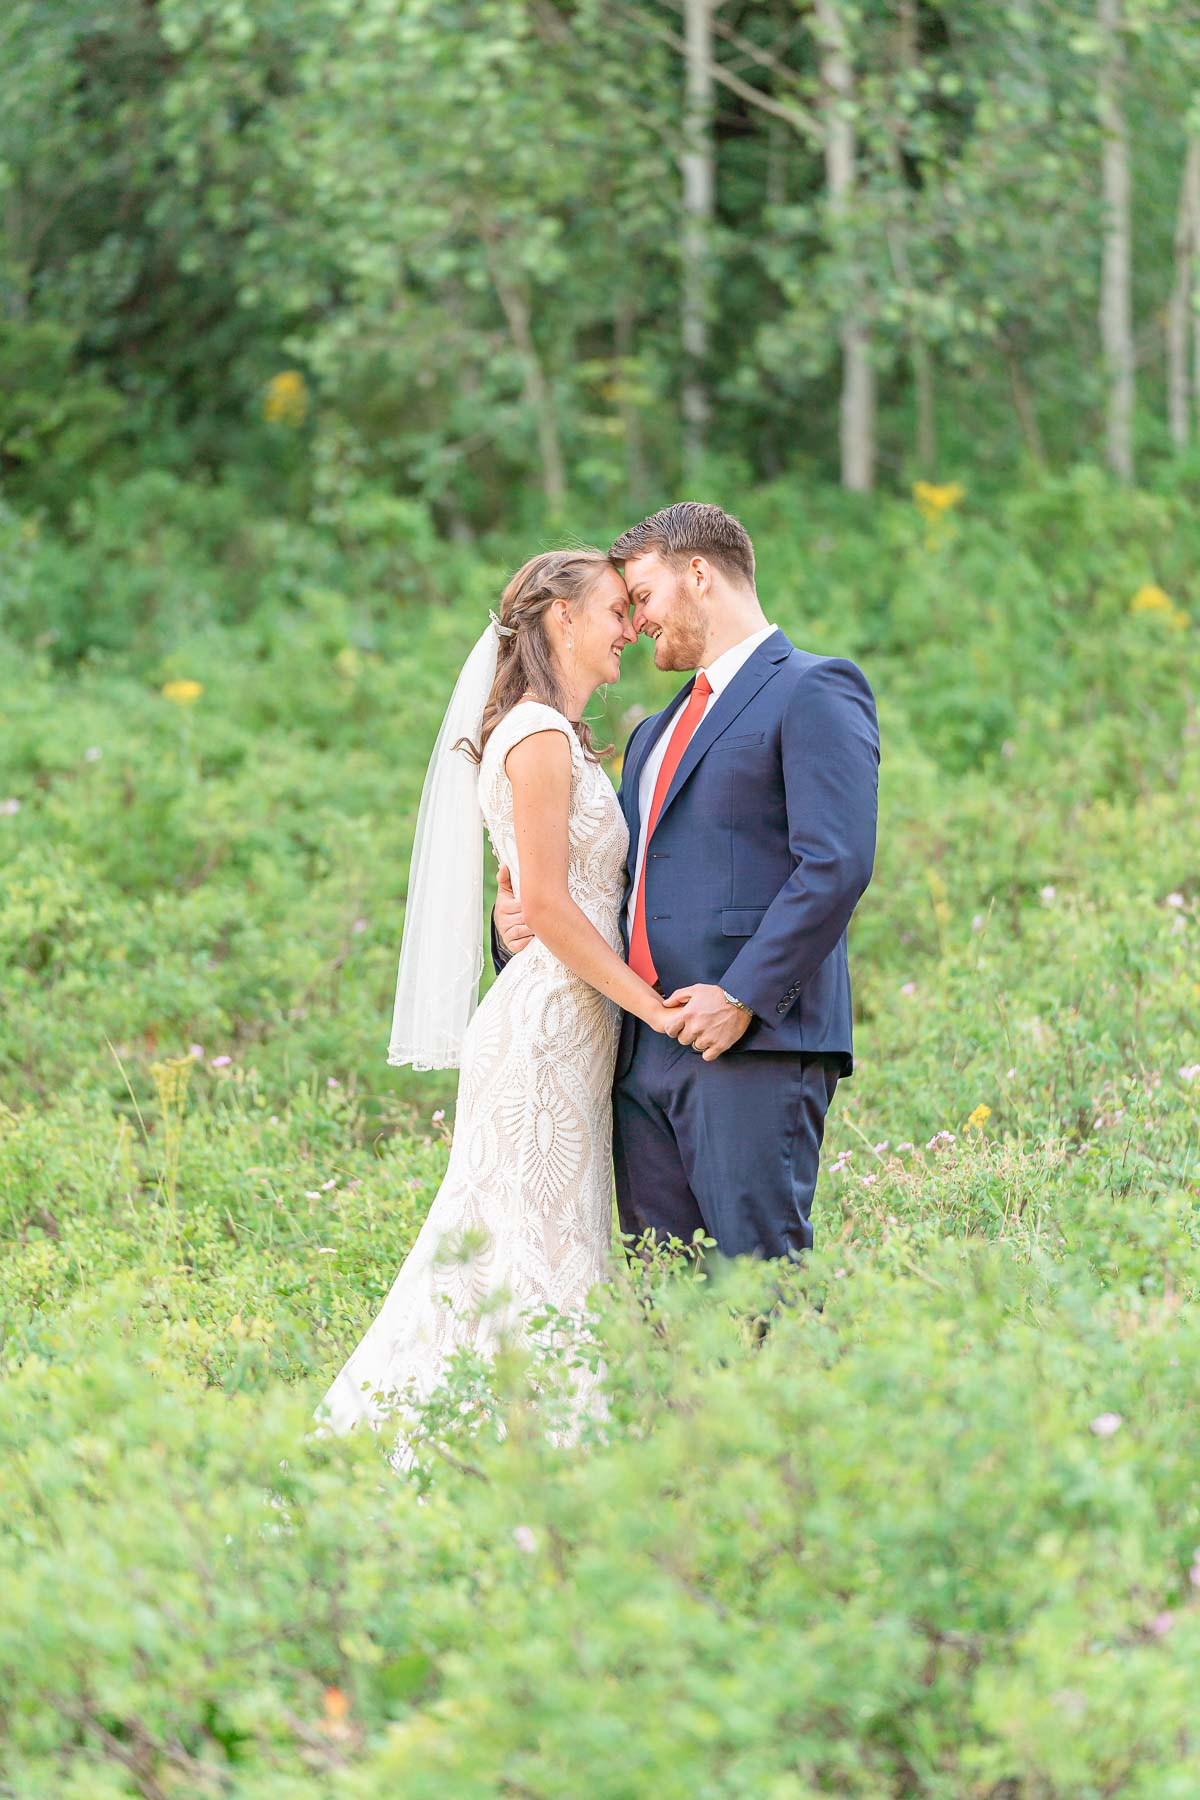 bride and groom in blue suit standing in field with yellow wildflowers